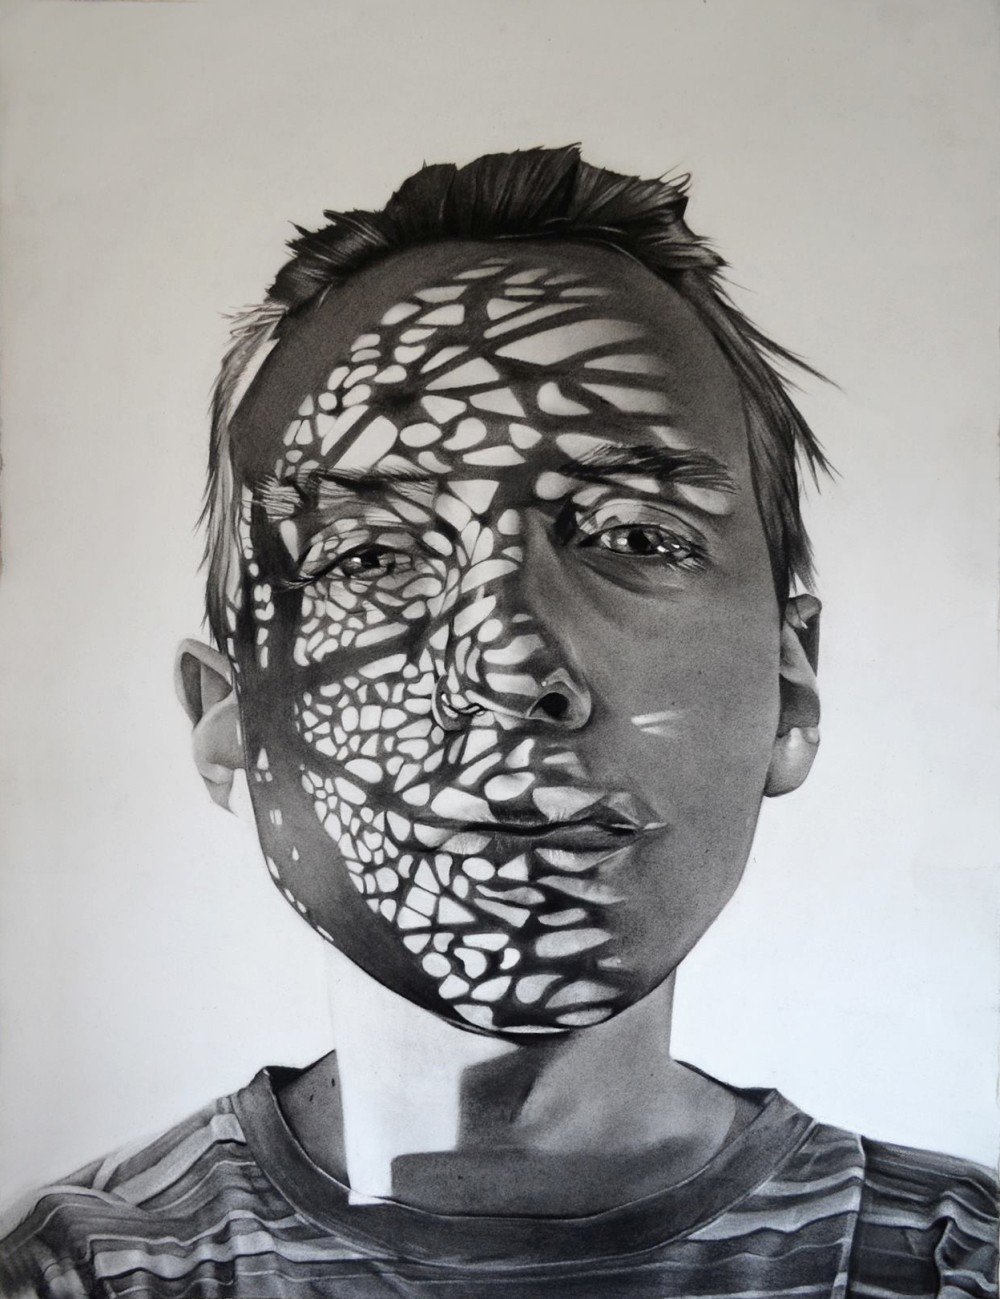 Shadowy Charcoal Portraits By Dylan Andrews -- A Drawing